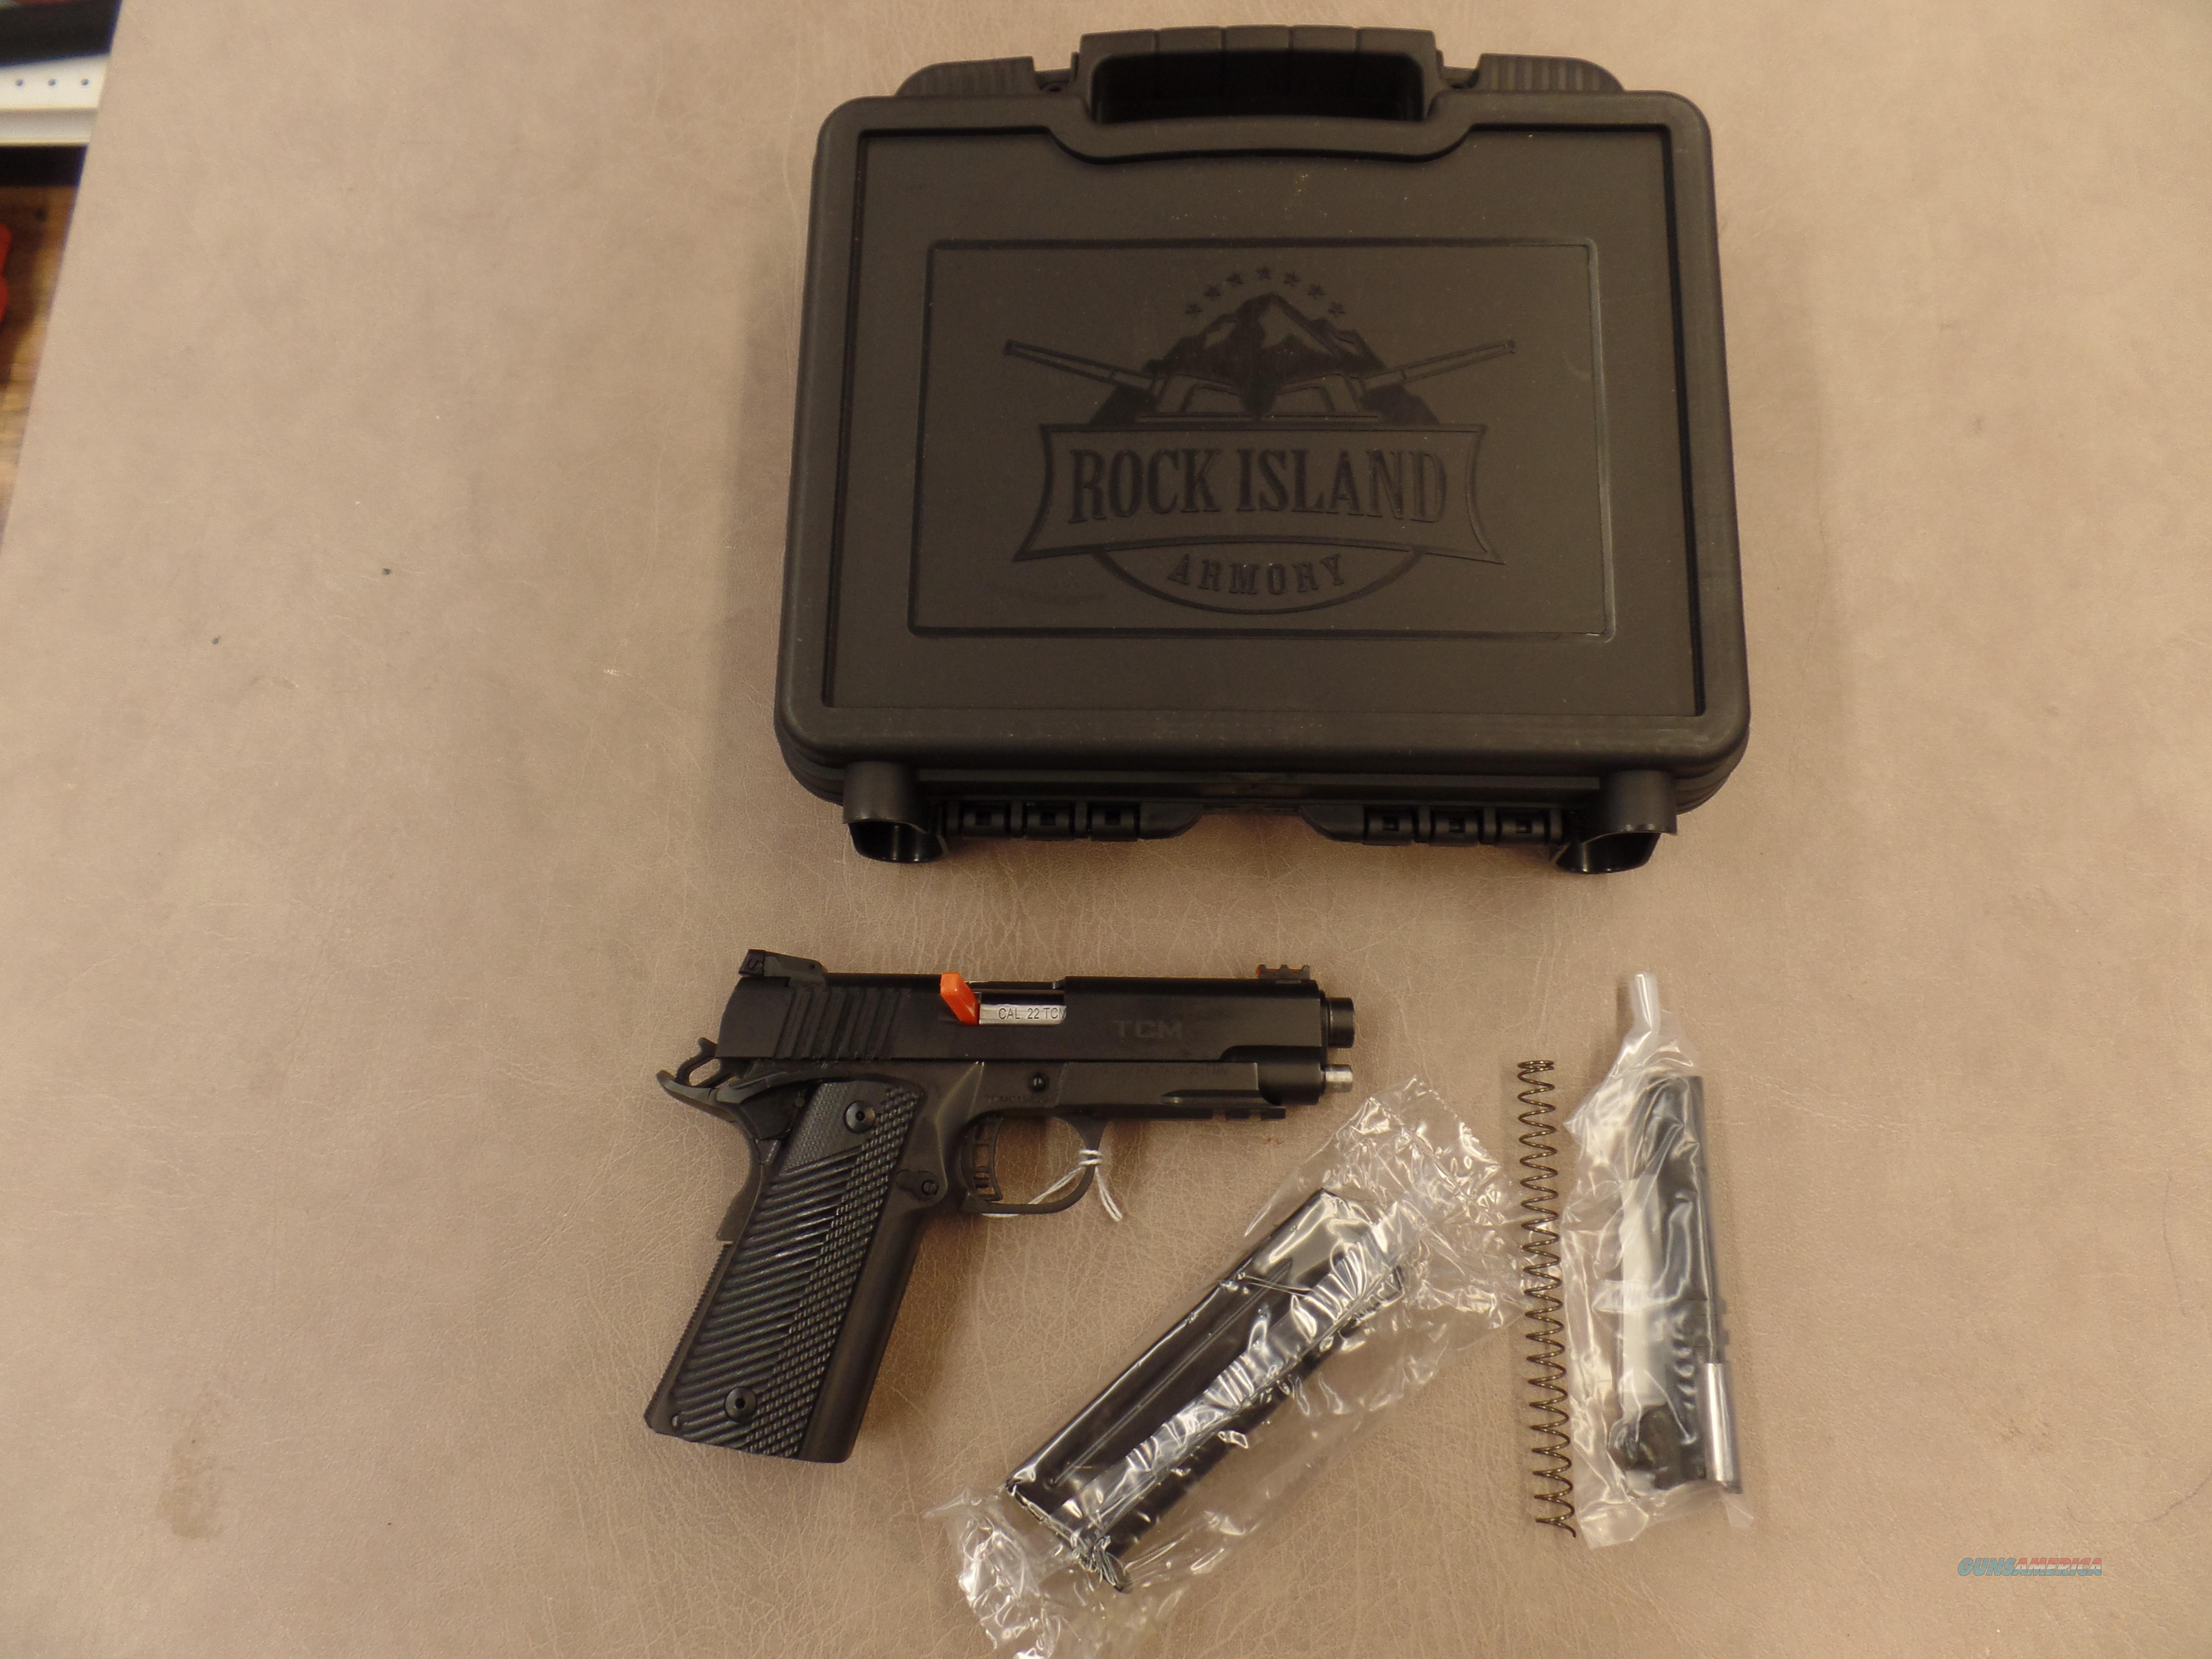 Armscor Rock Island M1911 A2 ( 22TCM / 9MM ) Both Barrels Included.  Guns > Pistols > Armscor Pistols > Rock Island